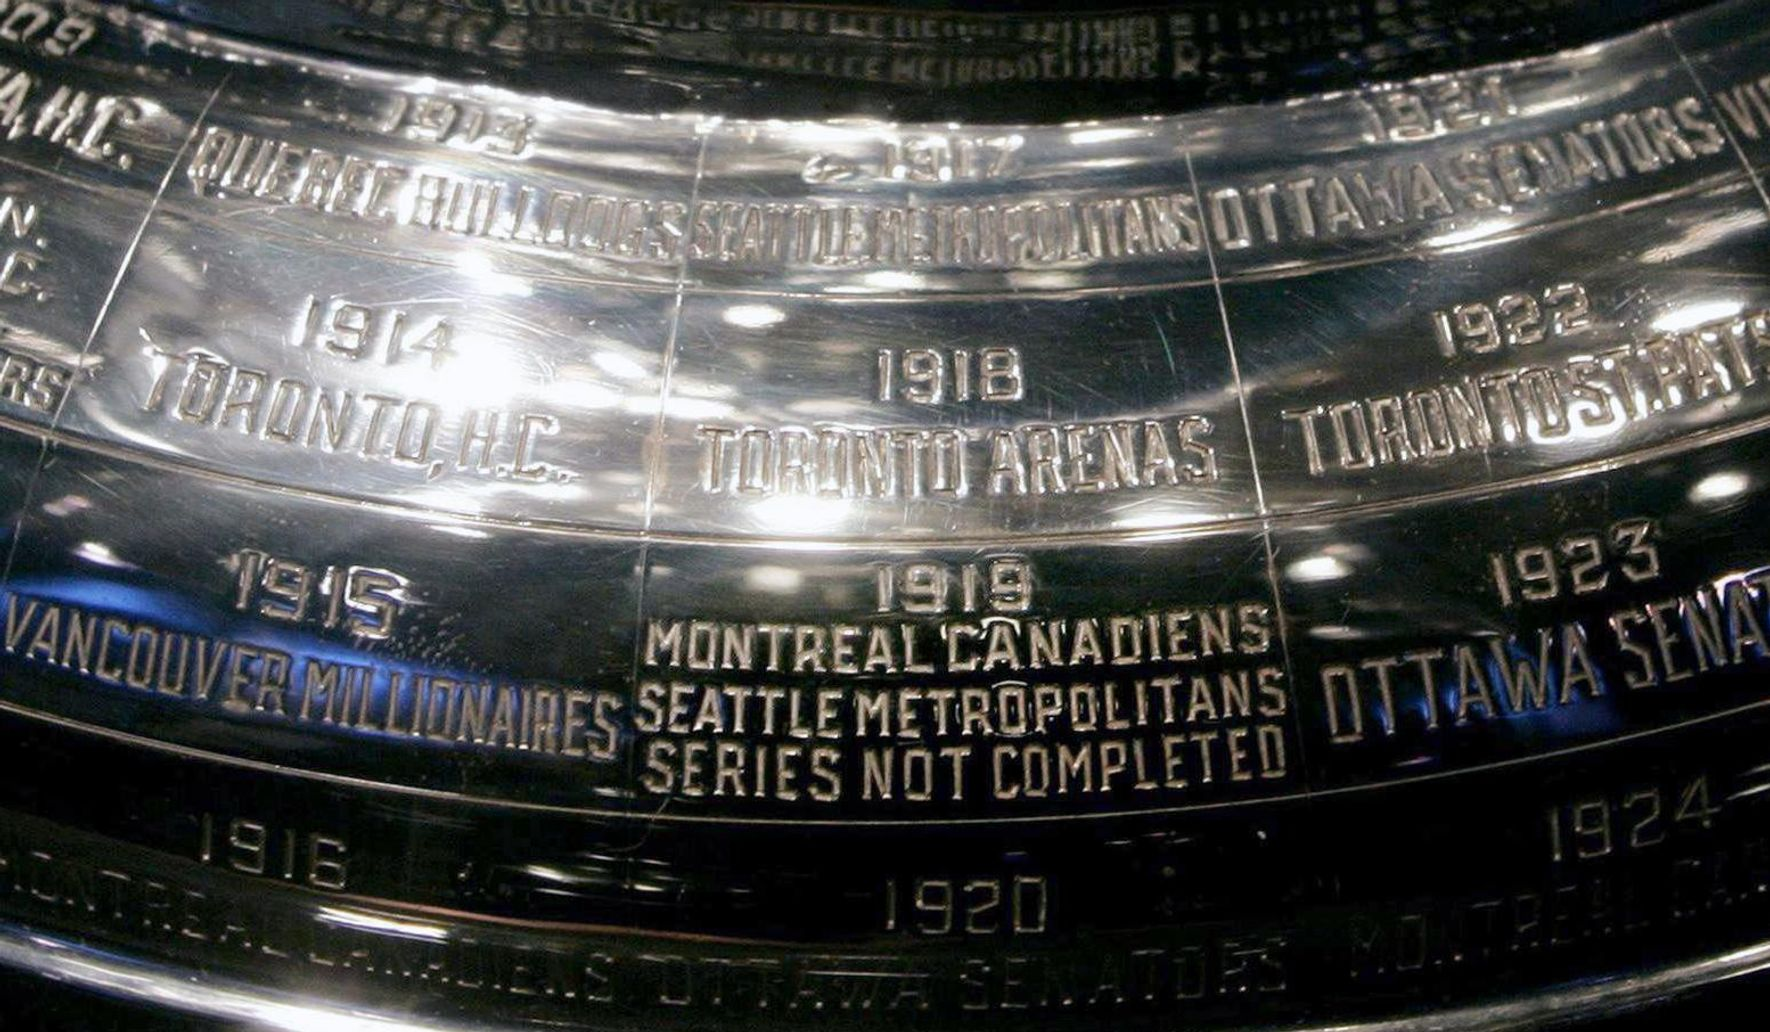 Abandoned_stanley_cup_series_hockey_79395_c0-65-1554-971_s1770x1032